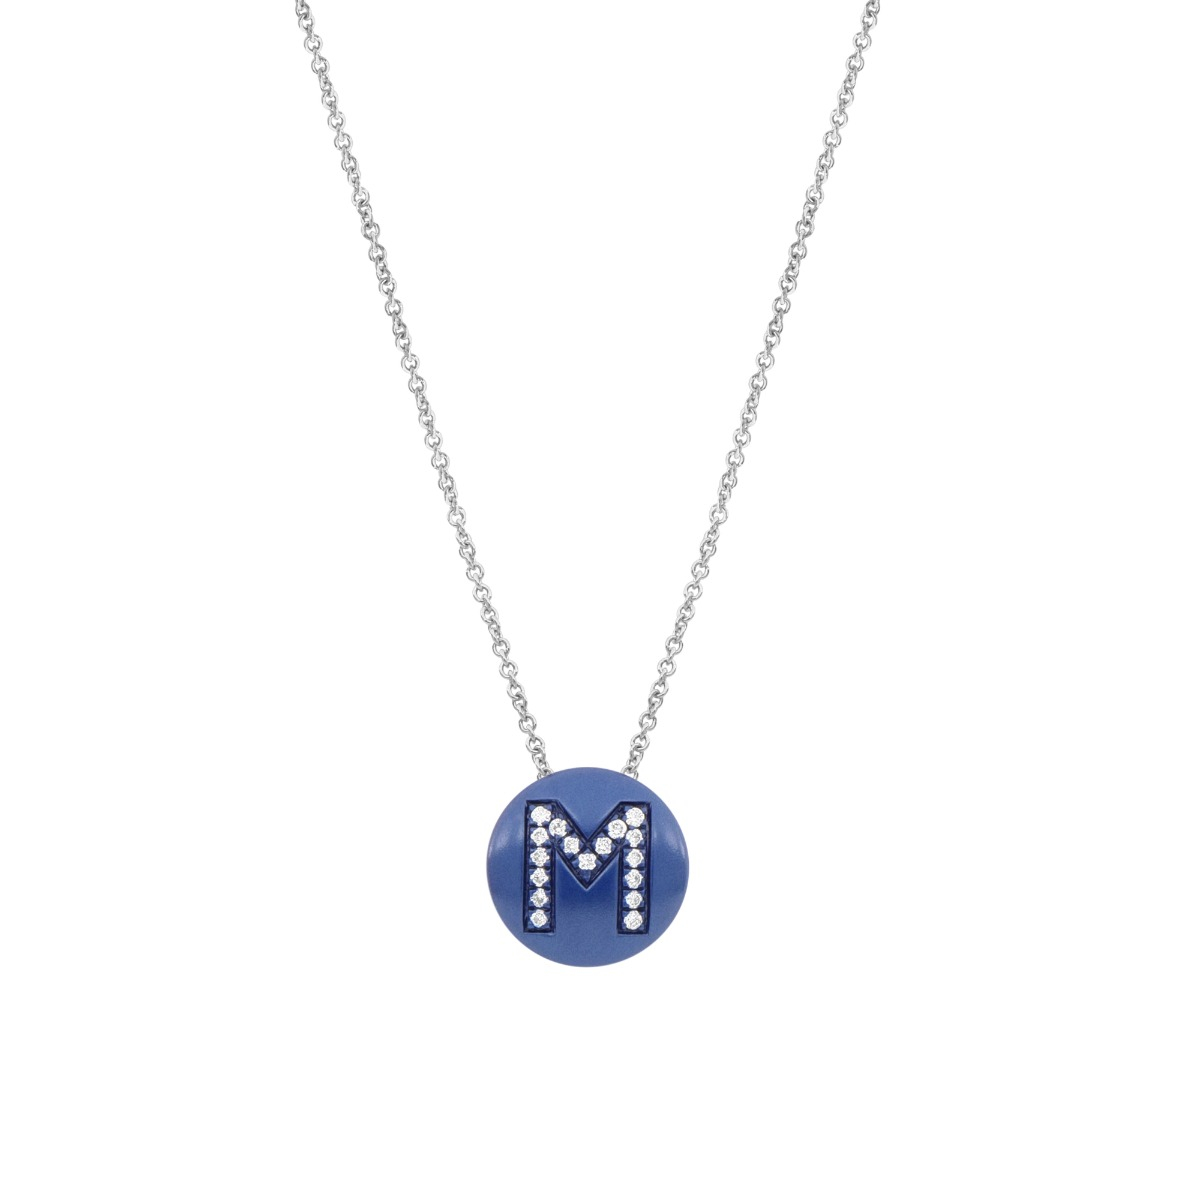 Blue Enamel Disc Necklace with Diamond Letter in 18 Kt White Gold